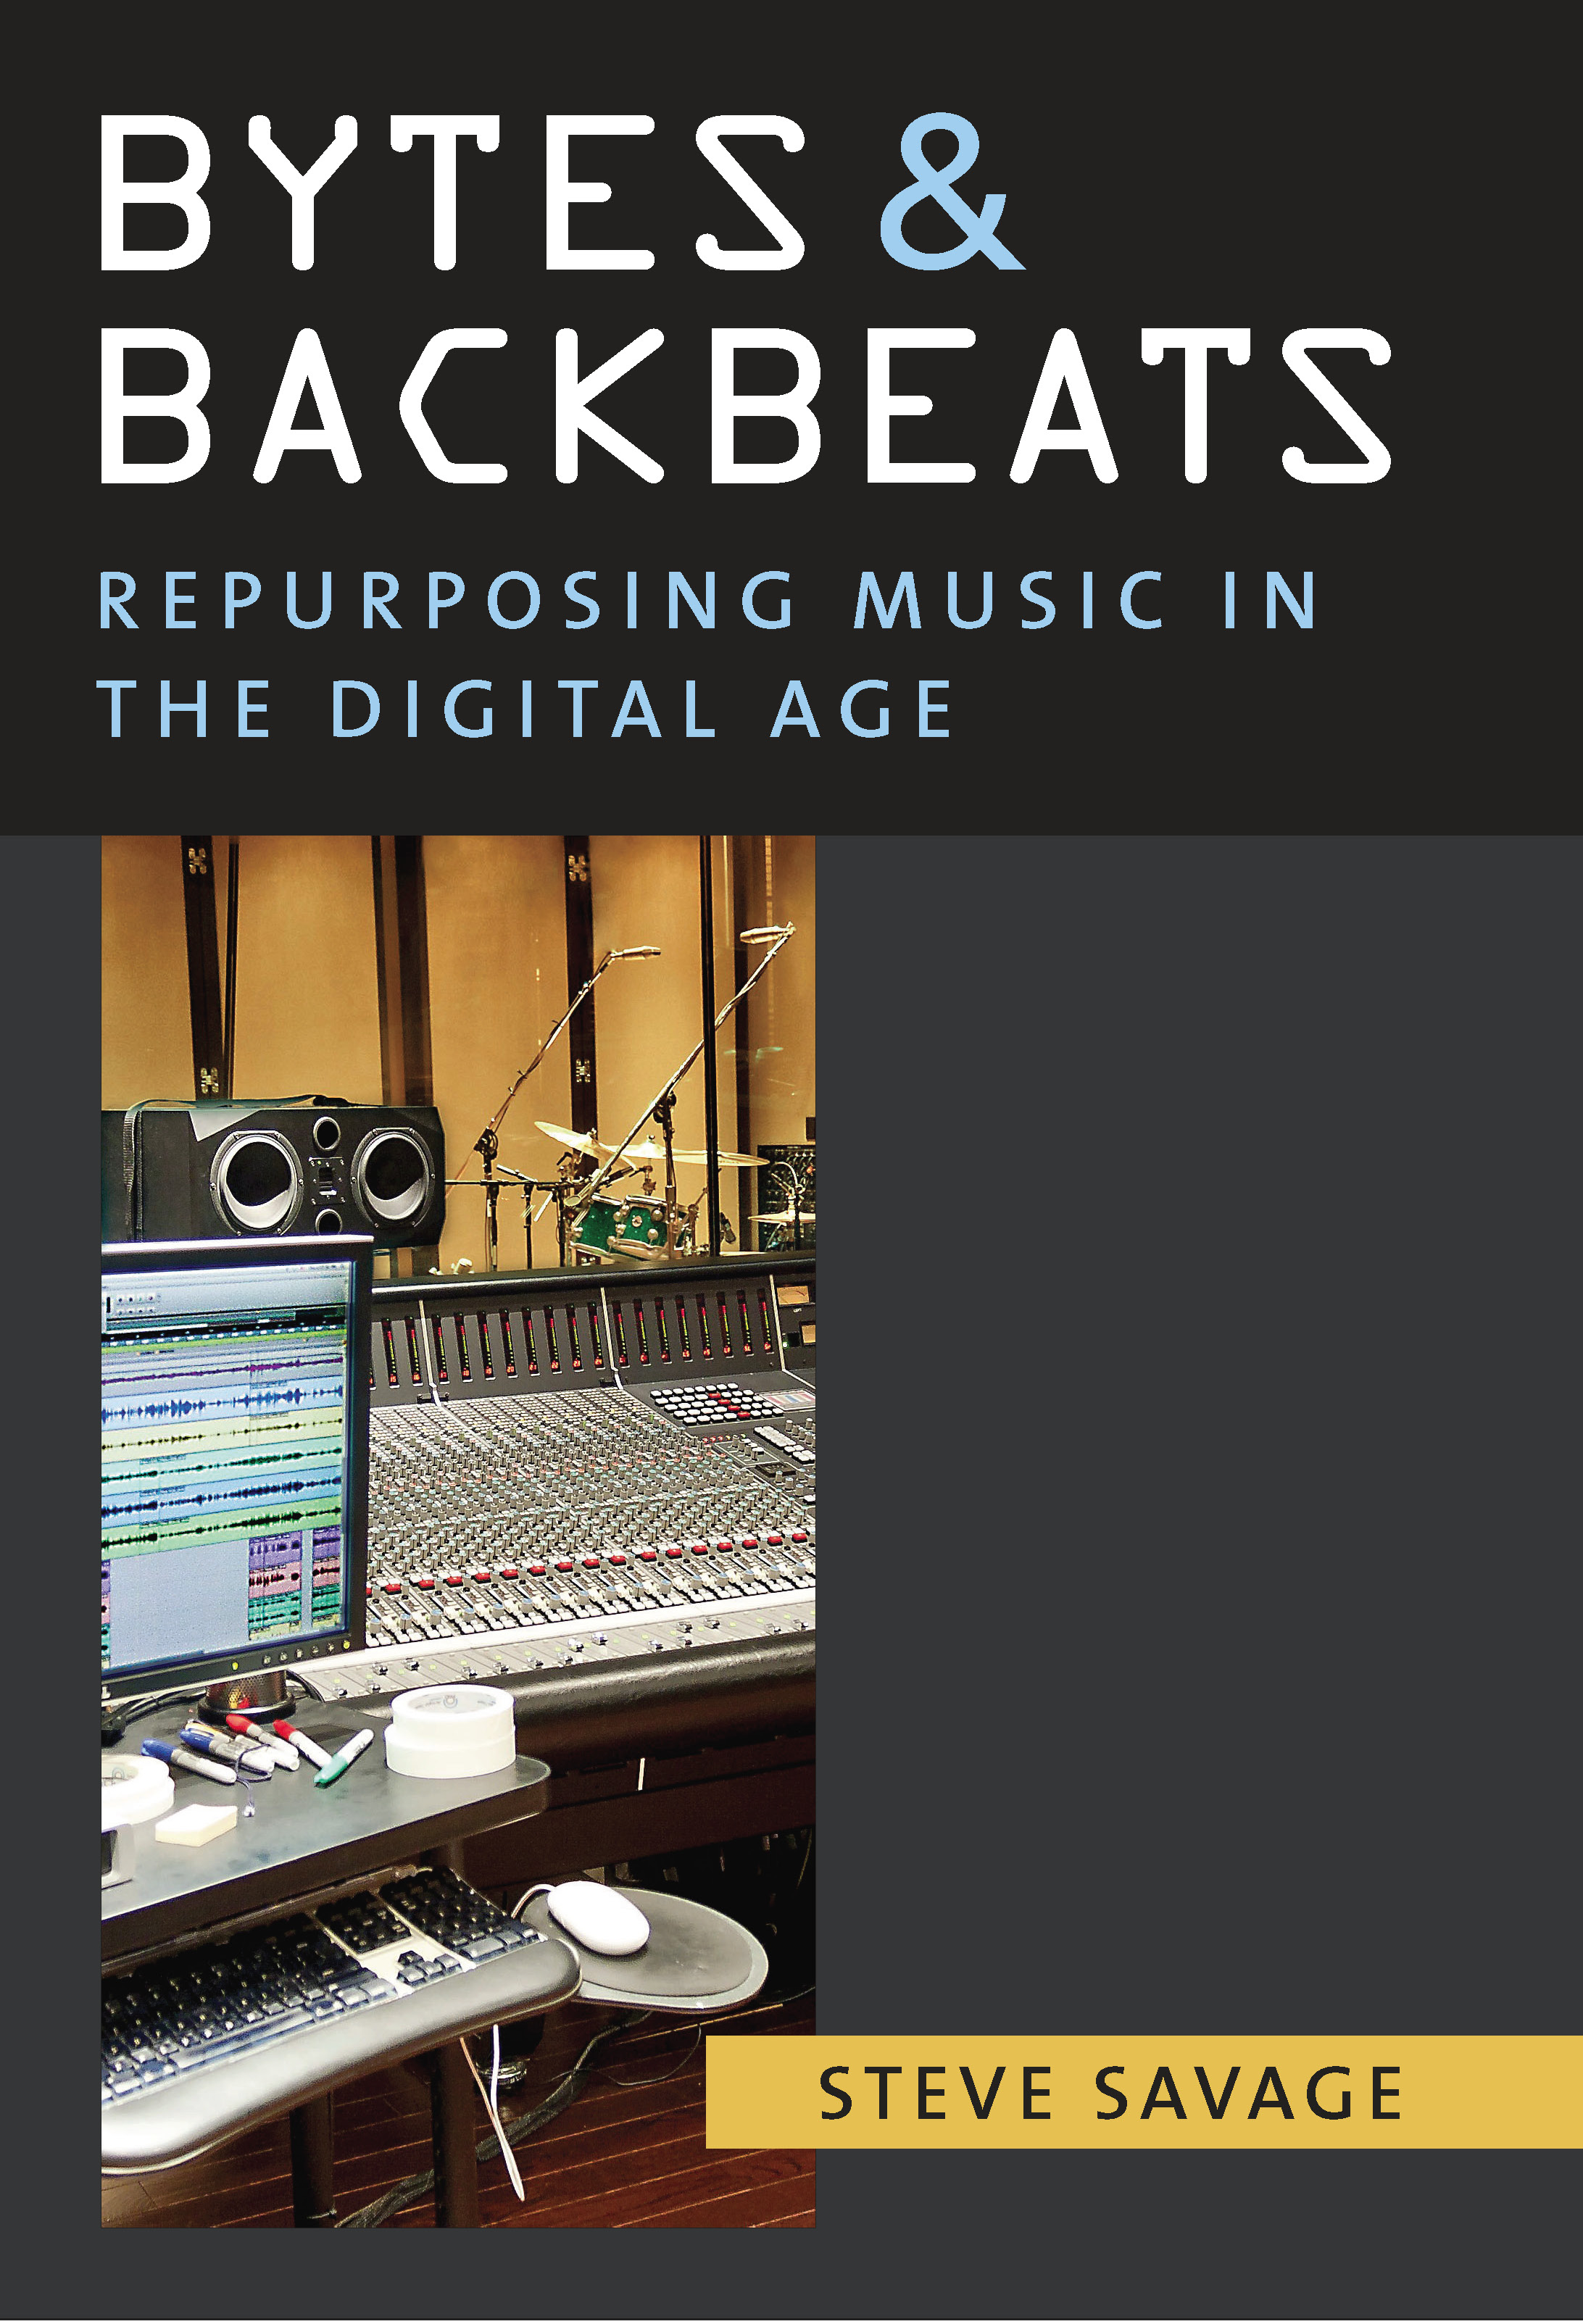 Bytes & Backbeats: Repurposing Music in the Digital Age by Steve Savage